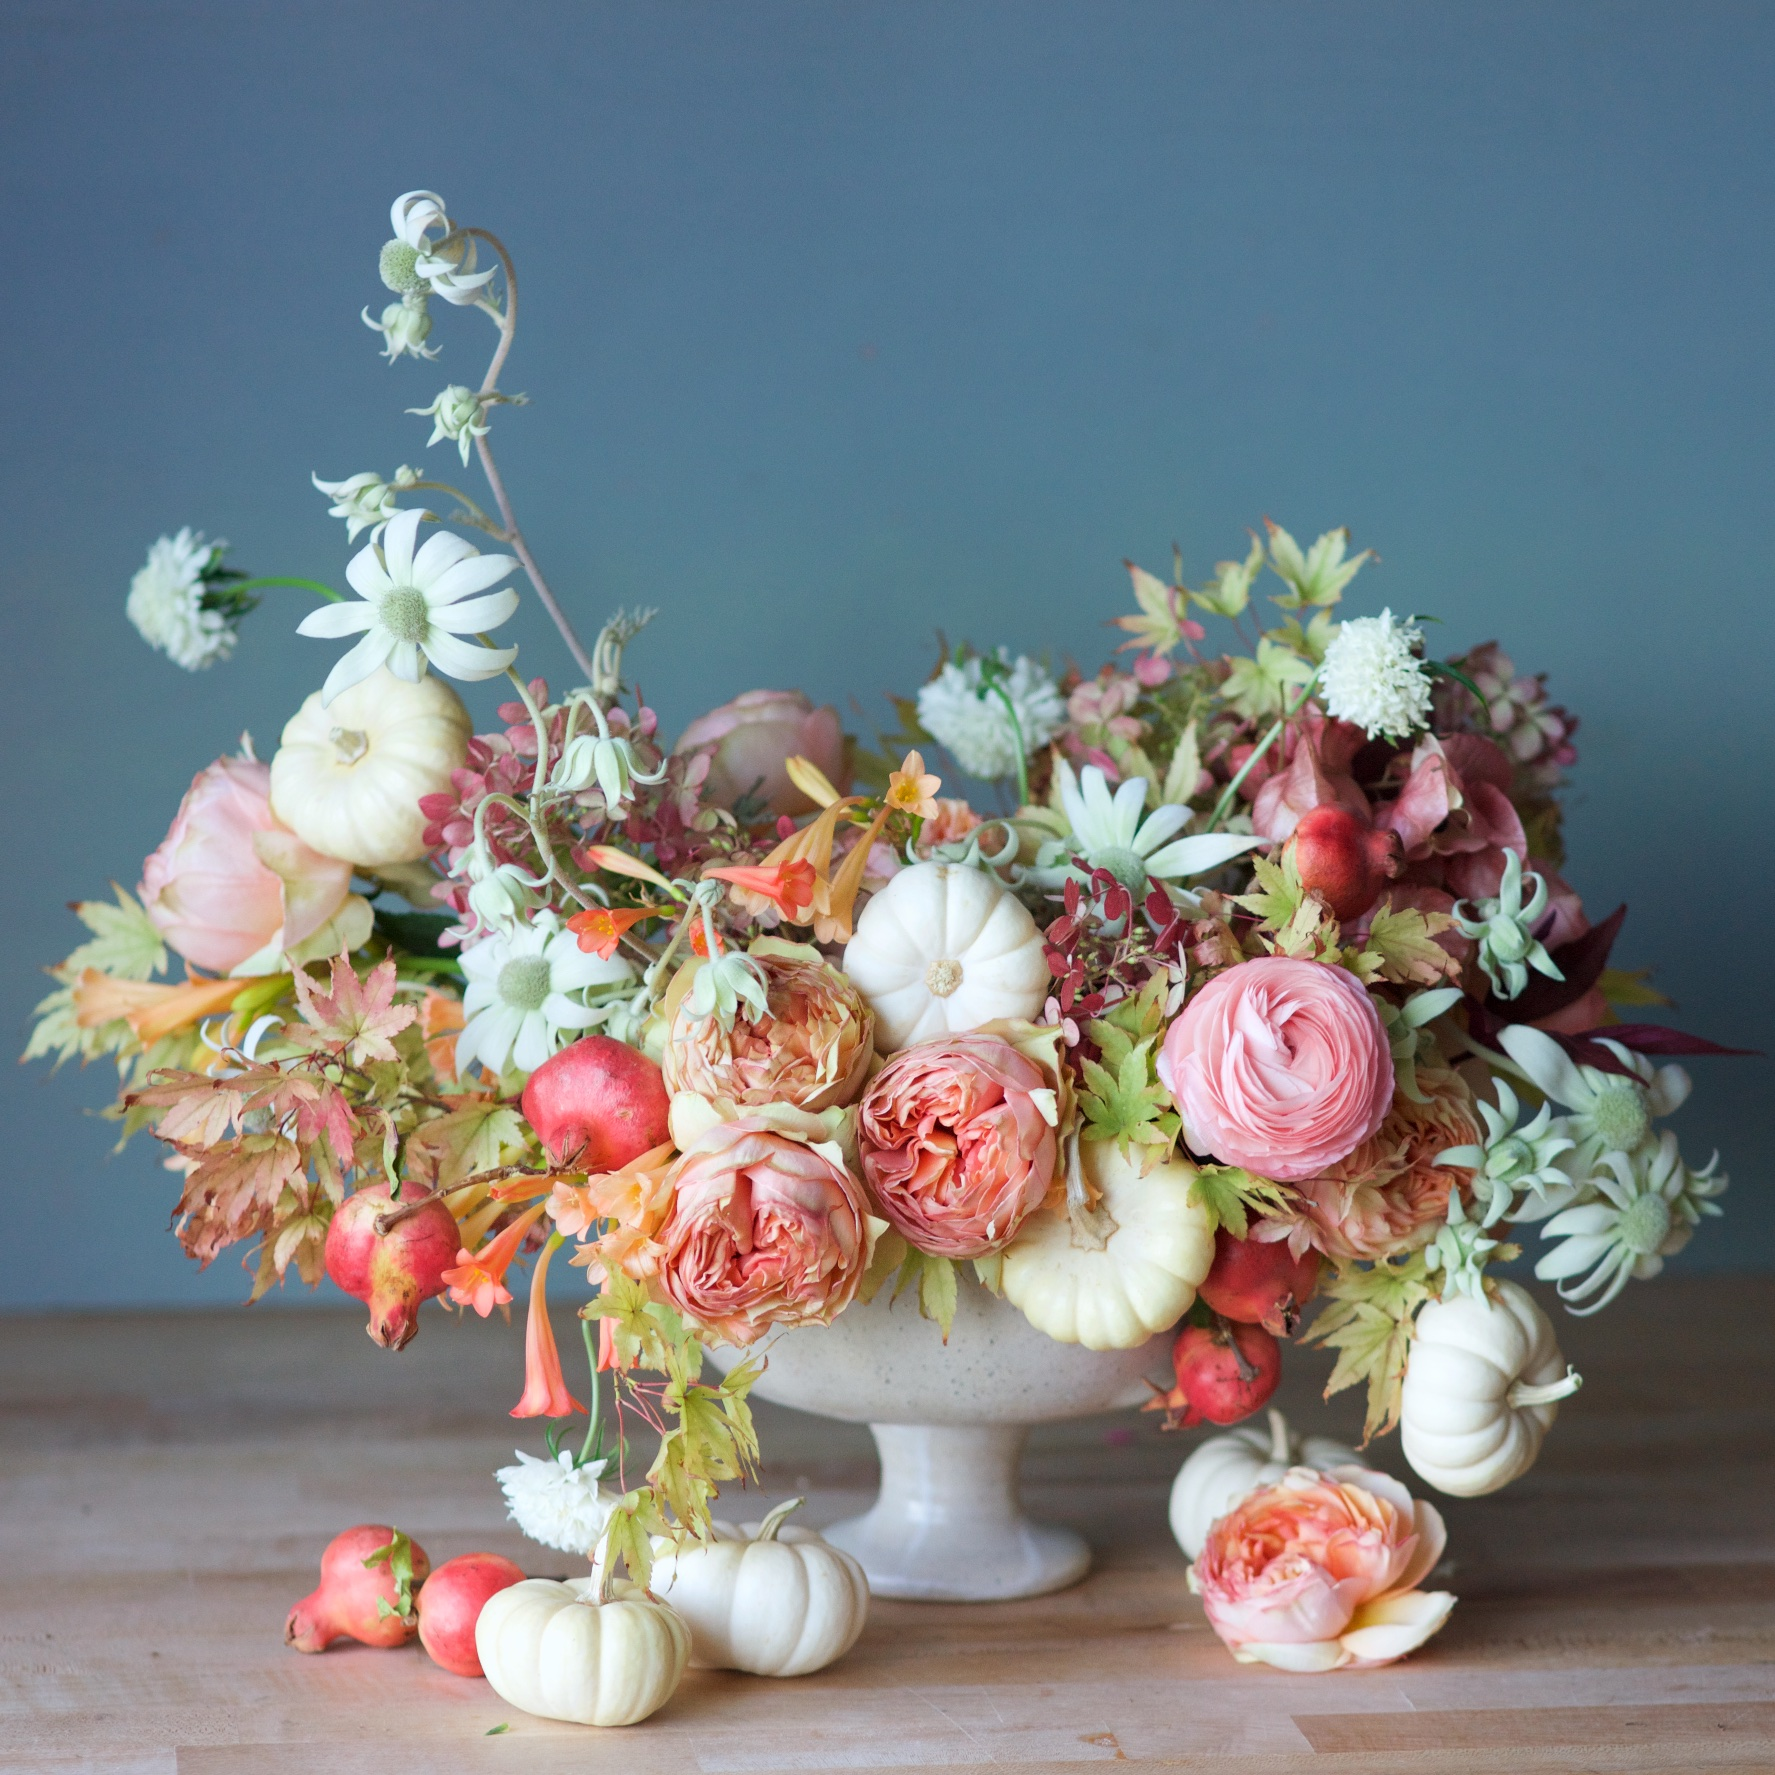 Fall Centerpiece with Mini White Pumpkins